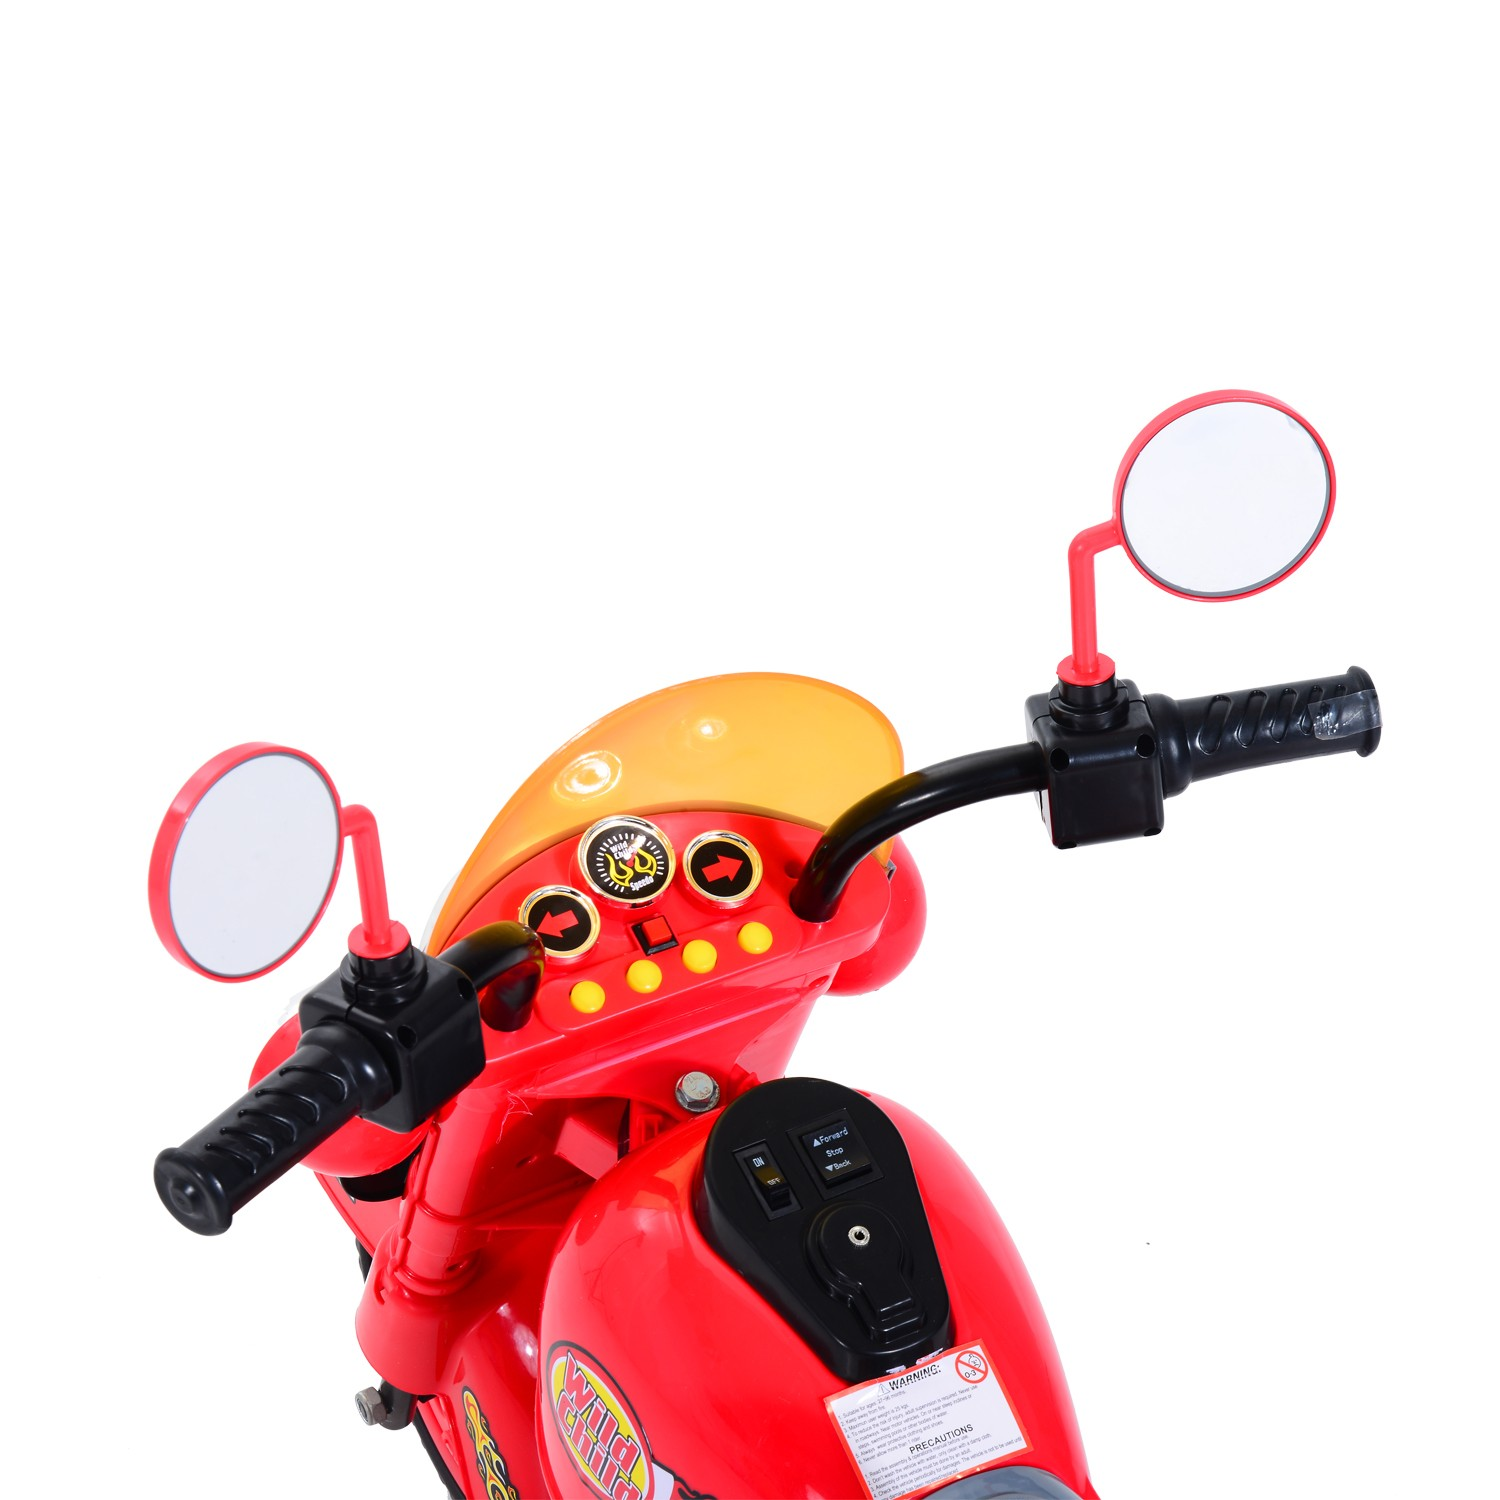 HOMCOM Kids Ride On Kids Electric Motorcycle, 6V-Red